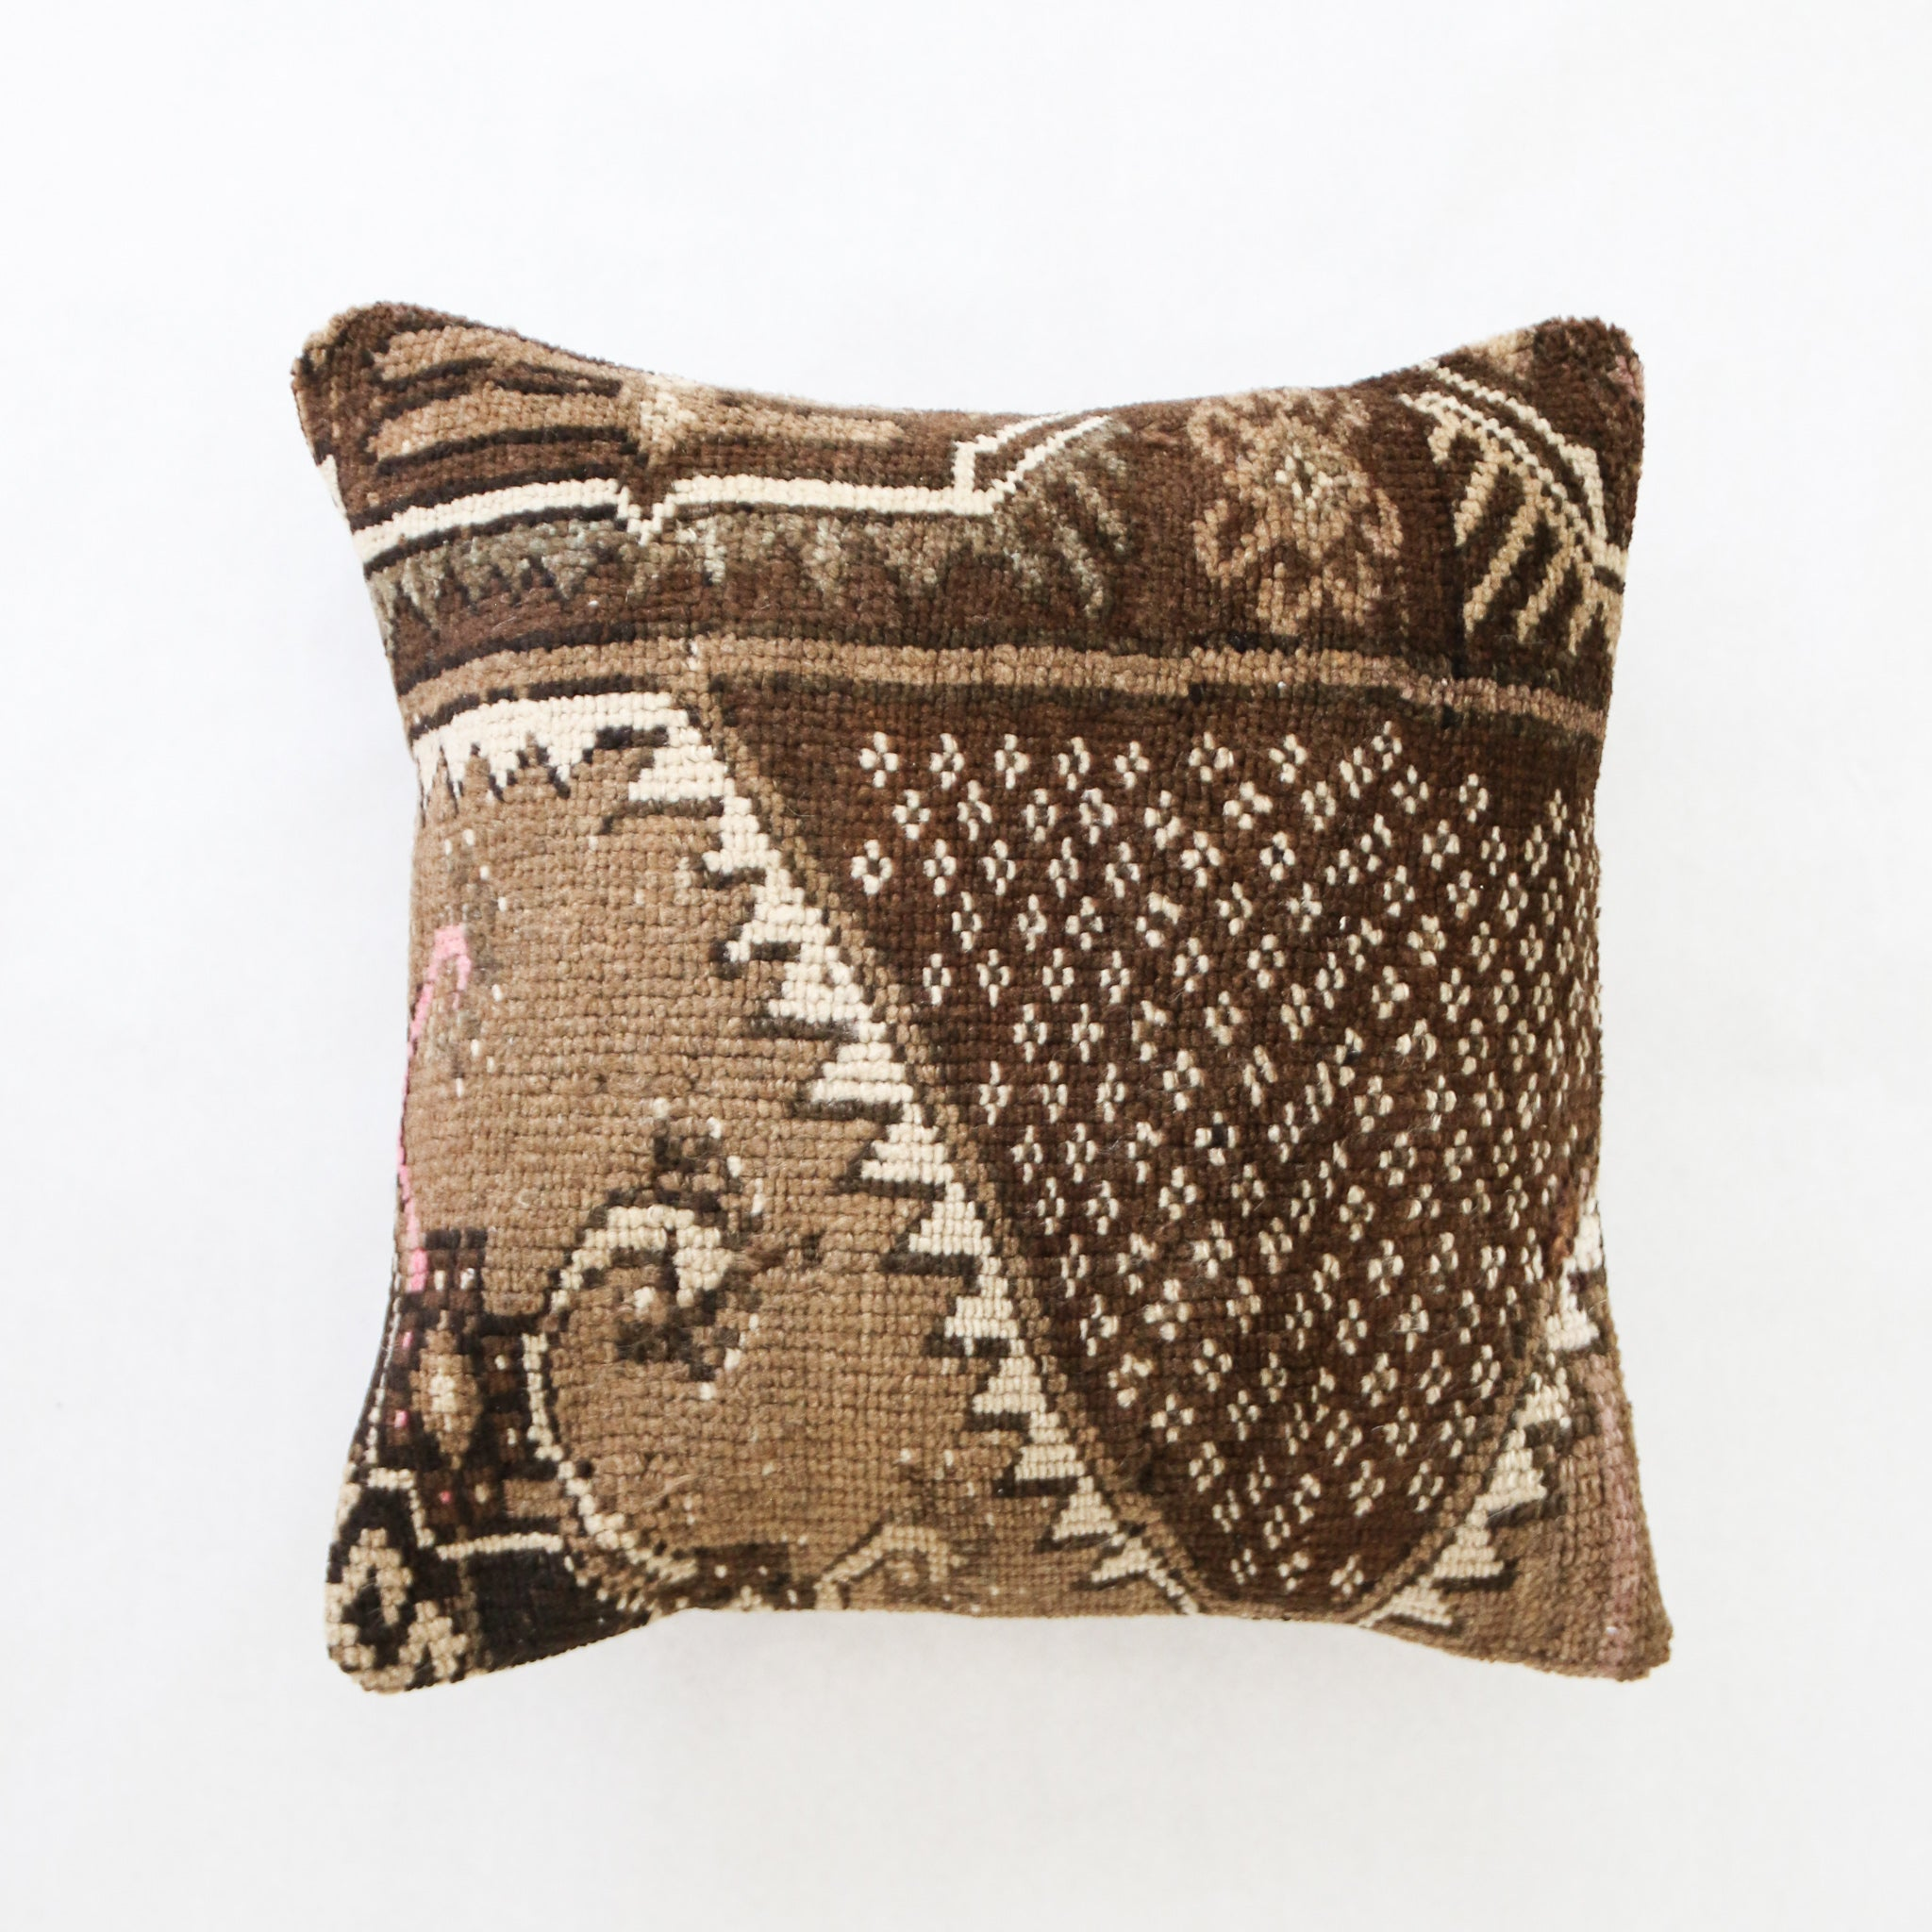 Nurten 03 Pillow 20x20